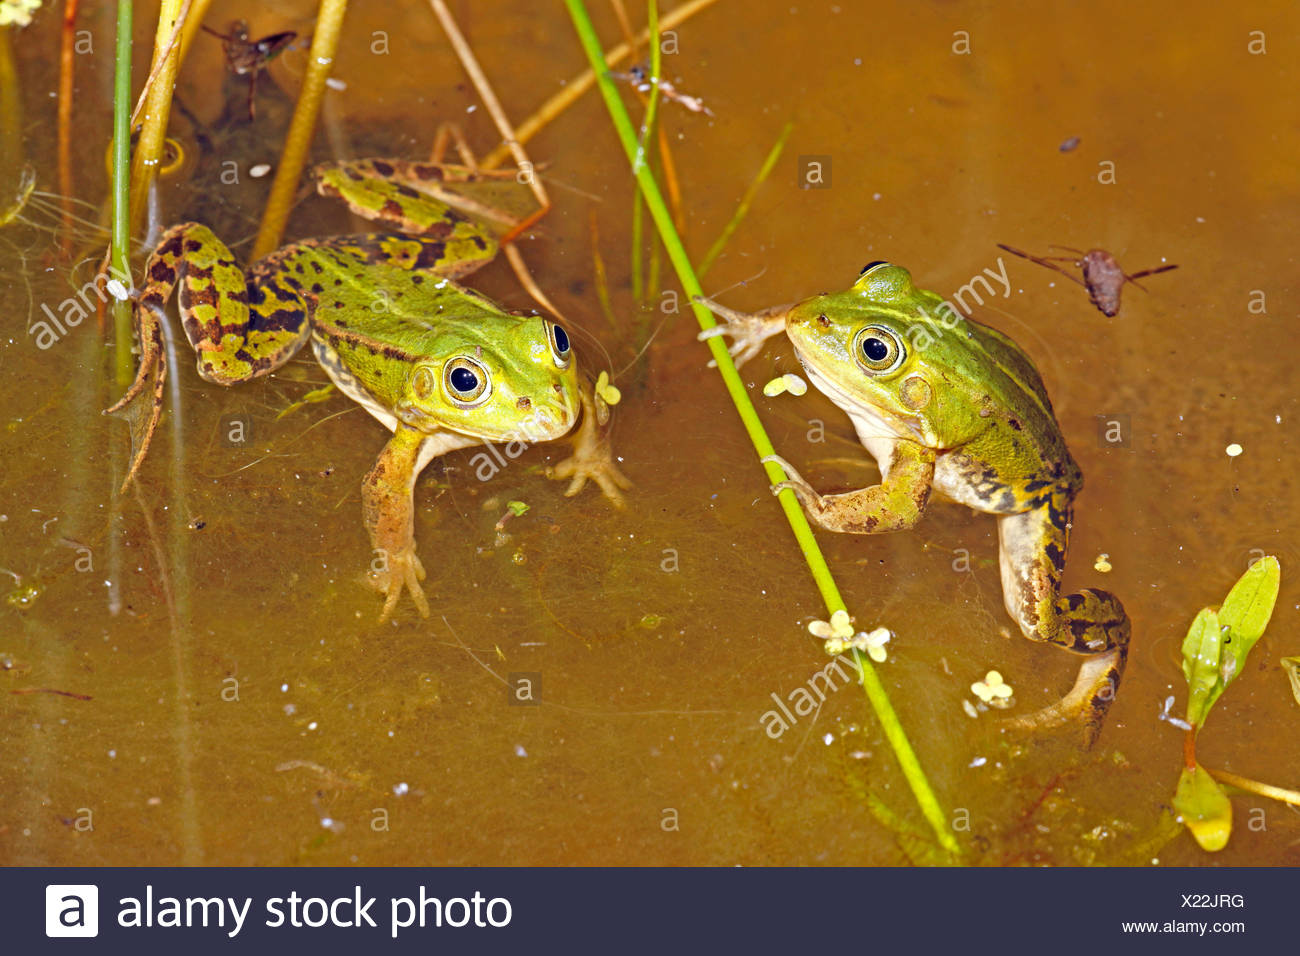 photo of two male pool frogs in their breeding pond at night - Stock Image